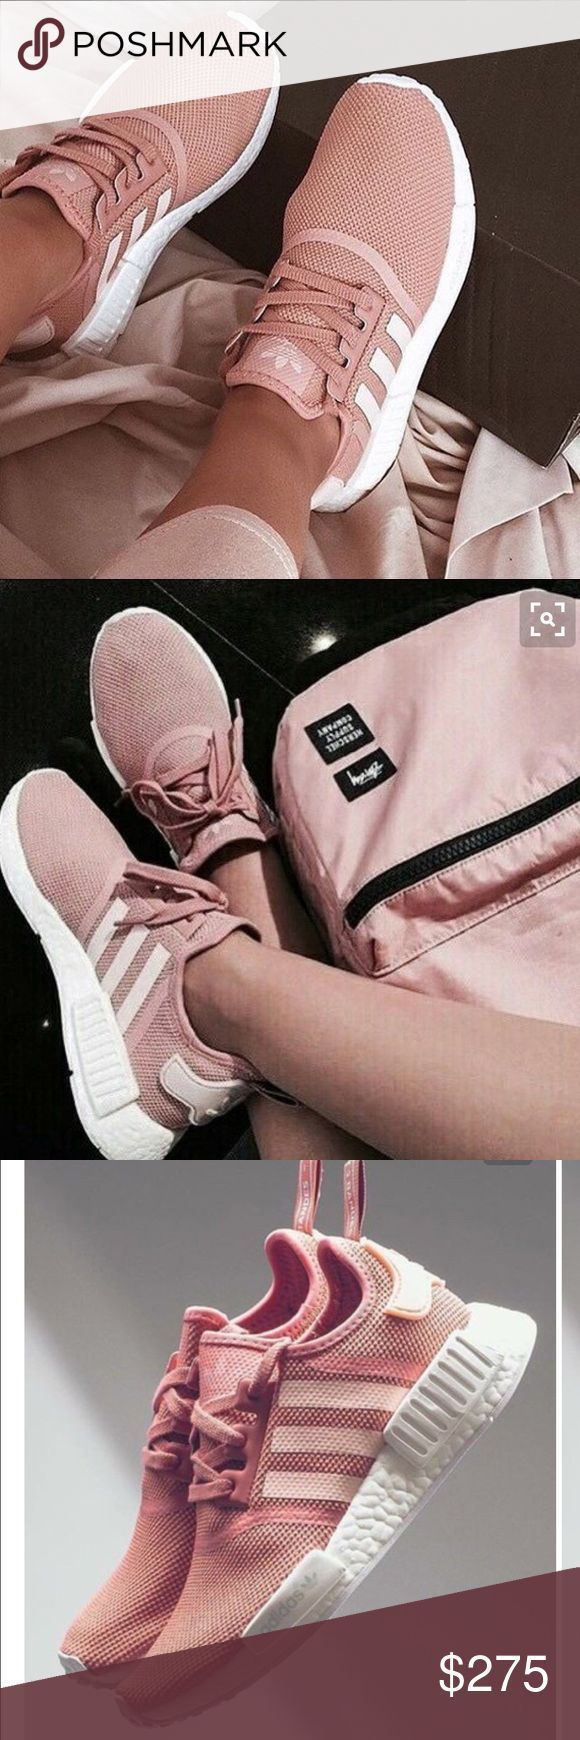 Adidas pink nmd limited edition RARE These are 100% authentic from another …   – Schuhe❤